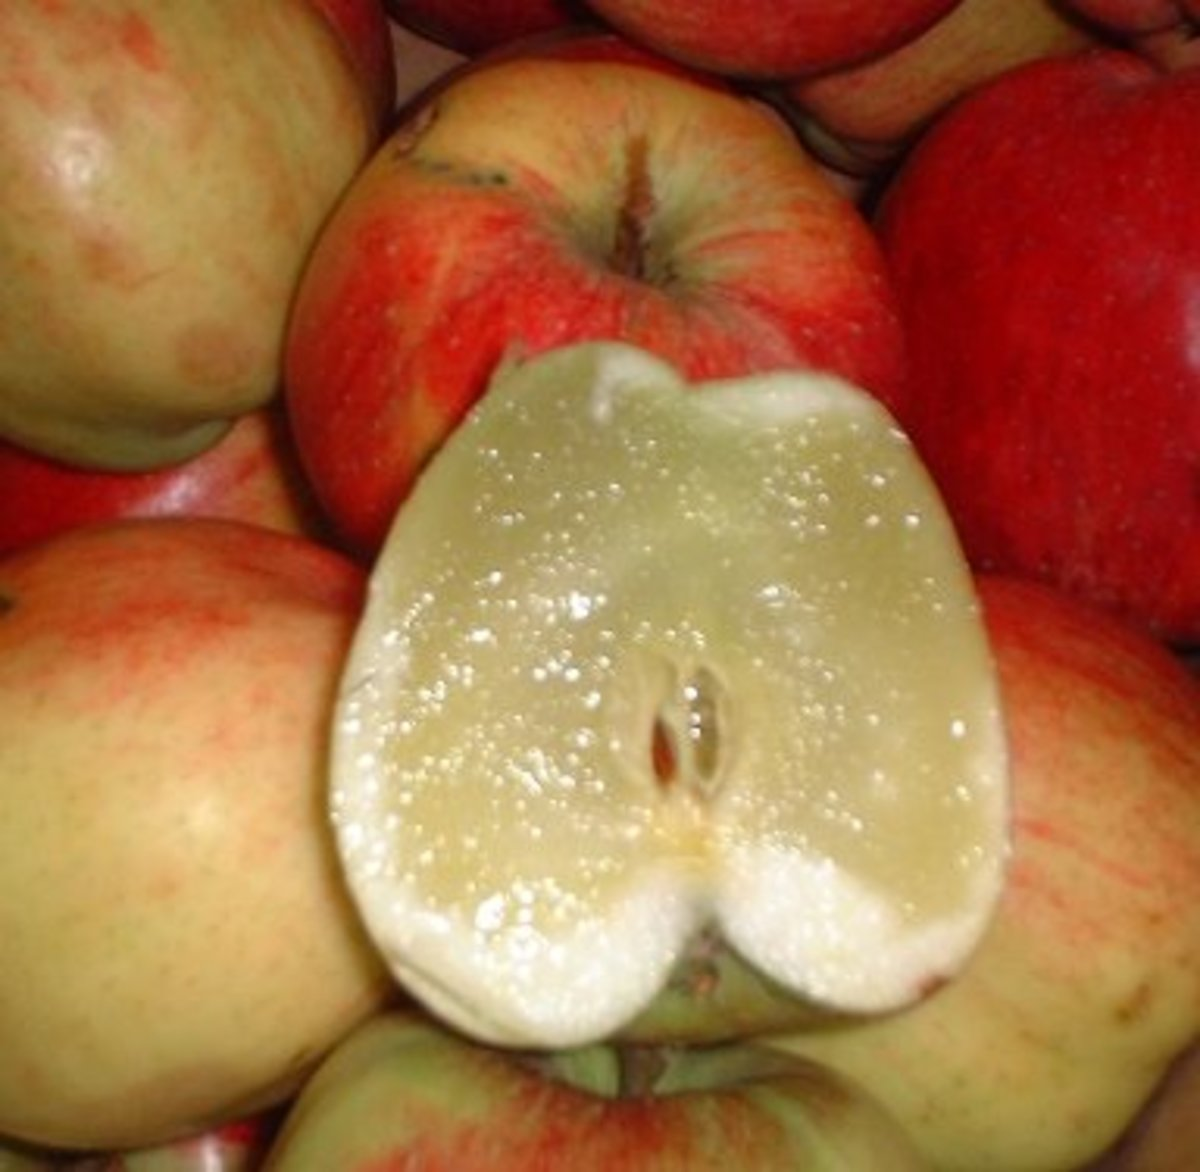 Extreme boron deficiency has caused the insides of this apple to turn soft.